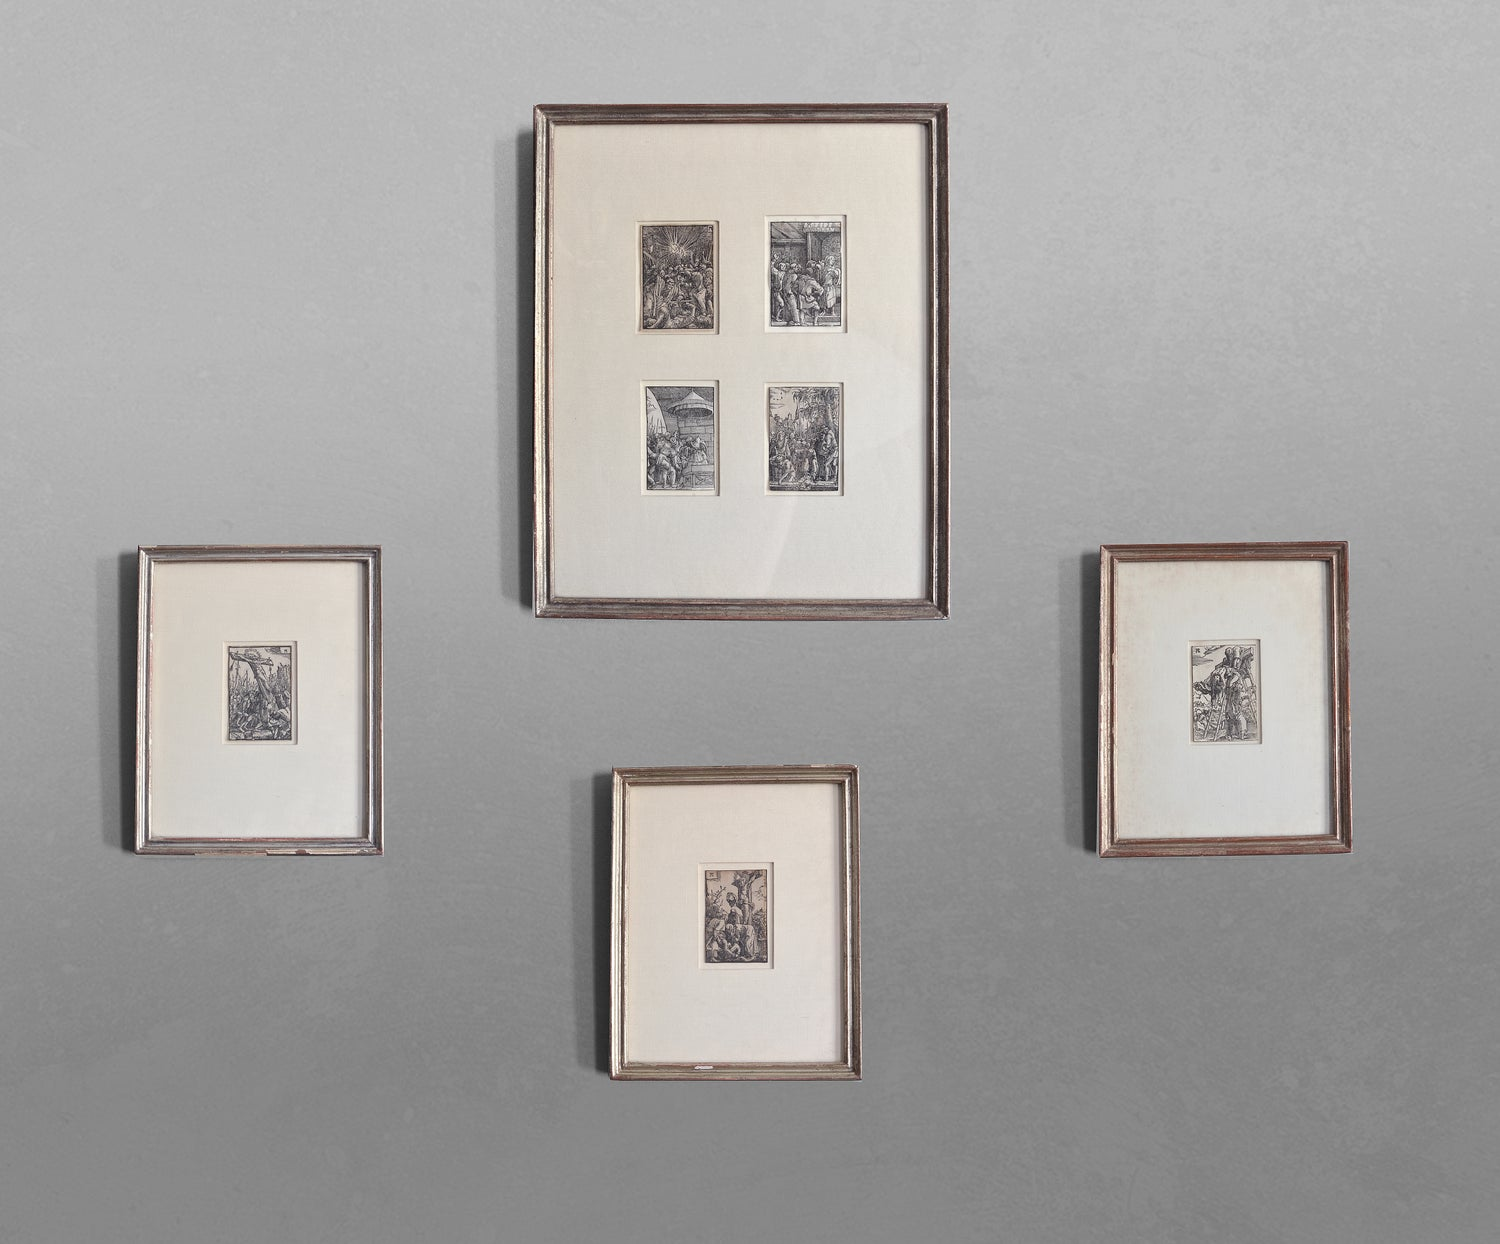 Image of A framed collection of 7 woodcuts from the Fall and Salvation of Mankind by Albrecht Altdorfer